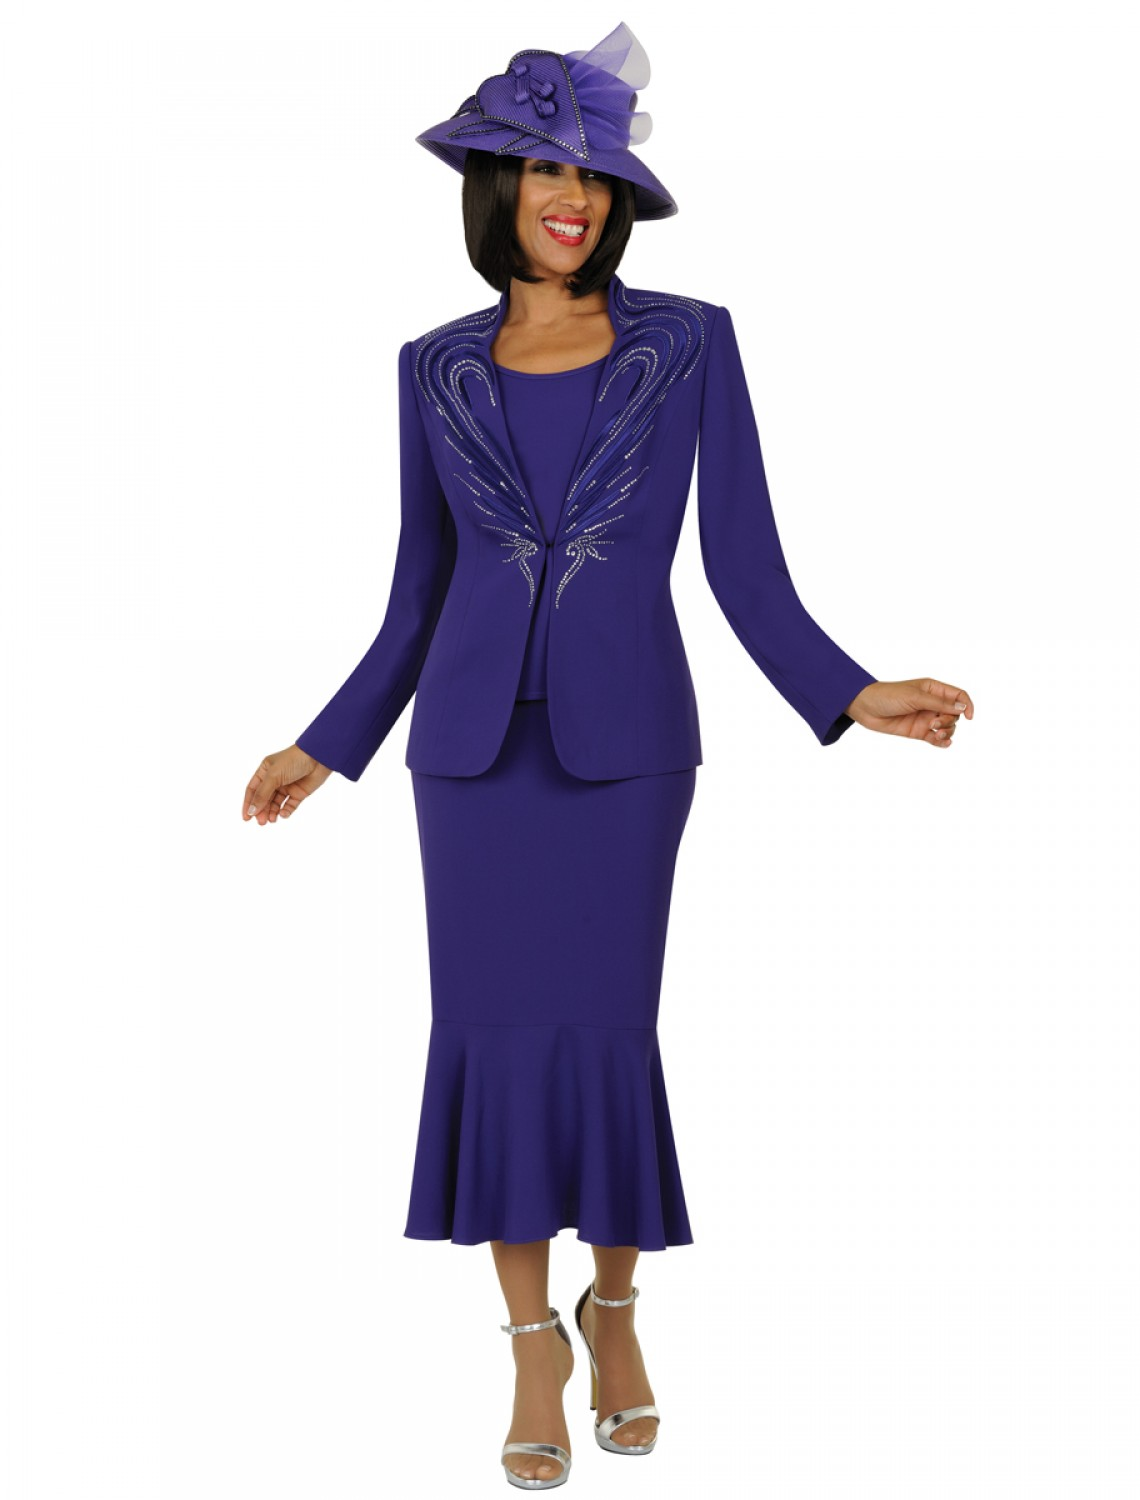 Women Church Suits Purple N94483 N94483 Not Just Church Suits